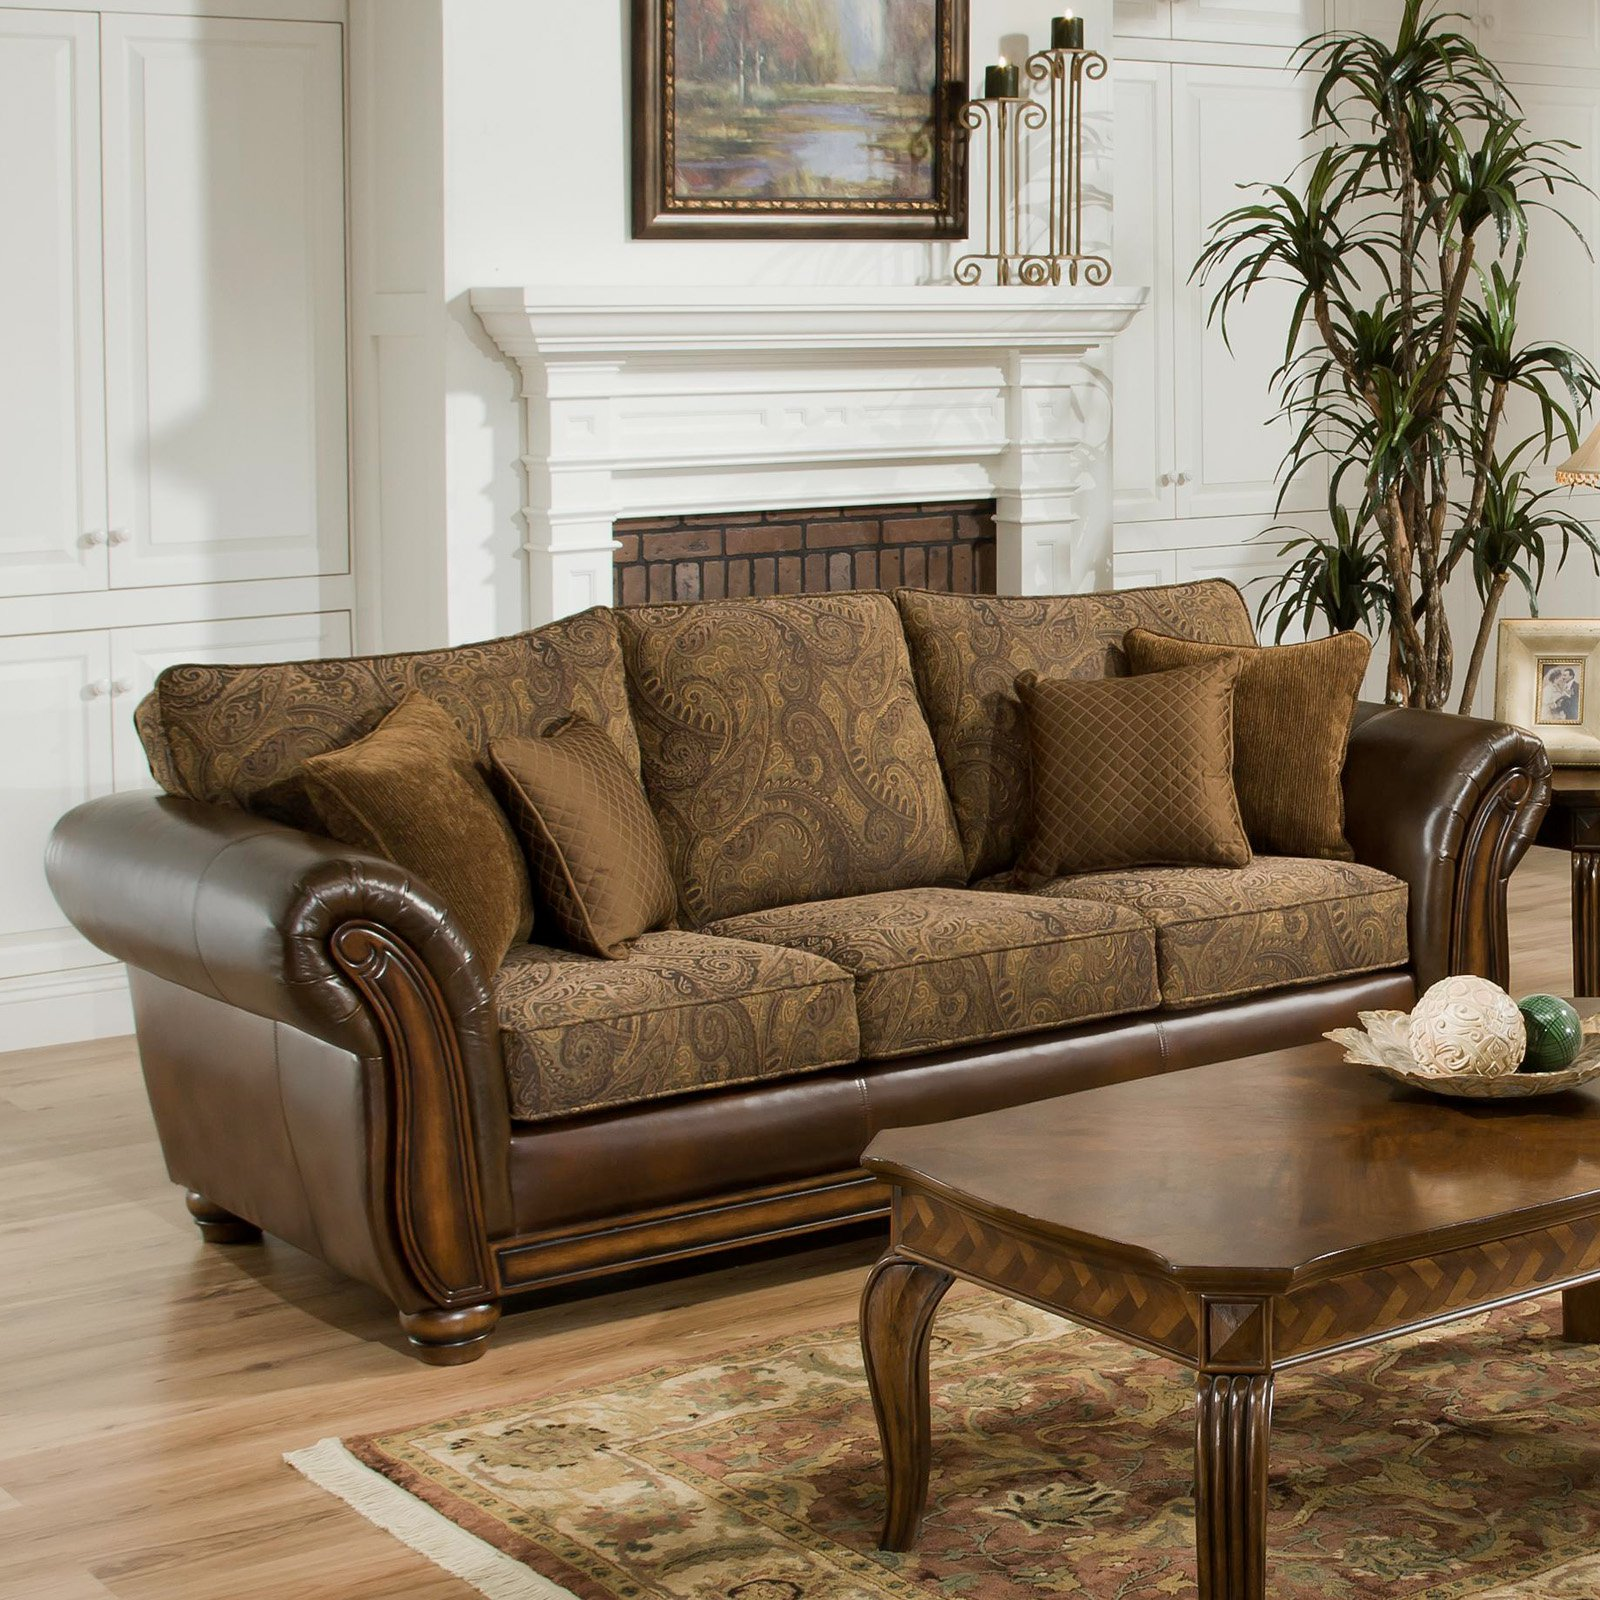 Simmons Zephyr Vintage Leather And Chenille Sofa With Accent Pillows    Walmart.com